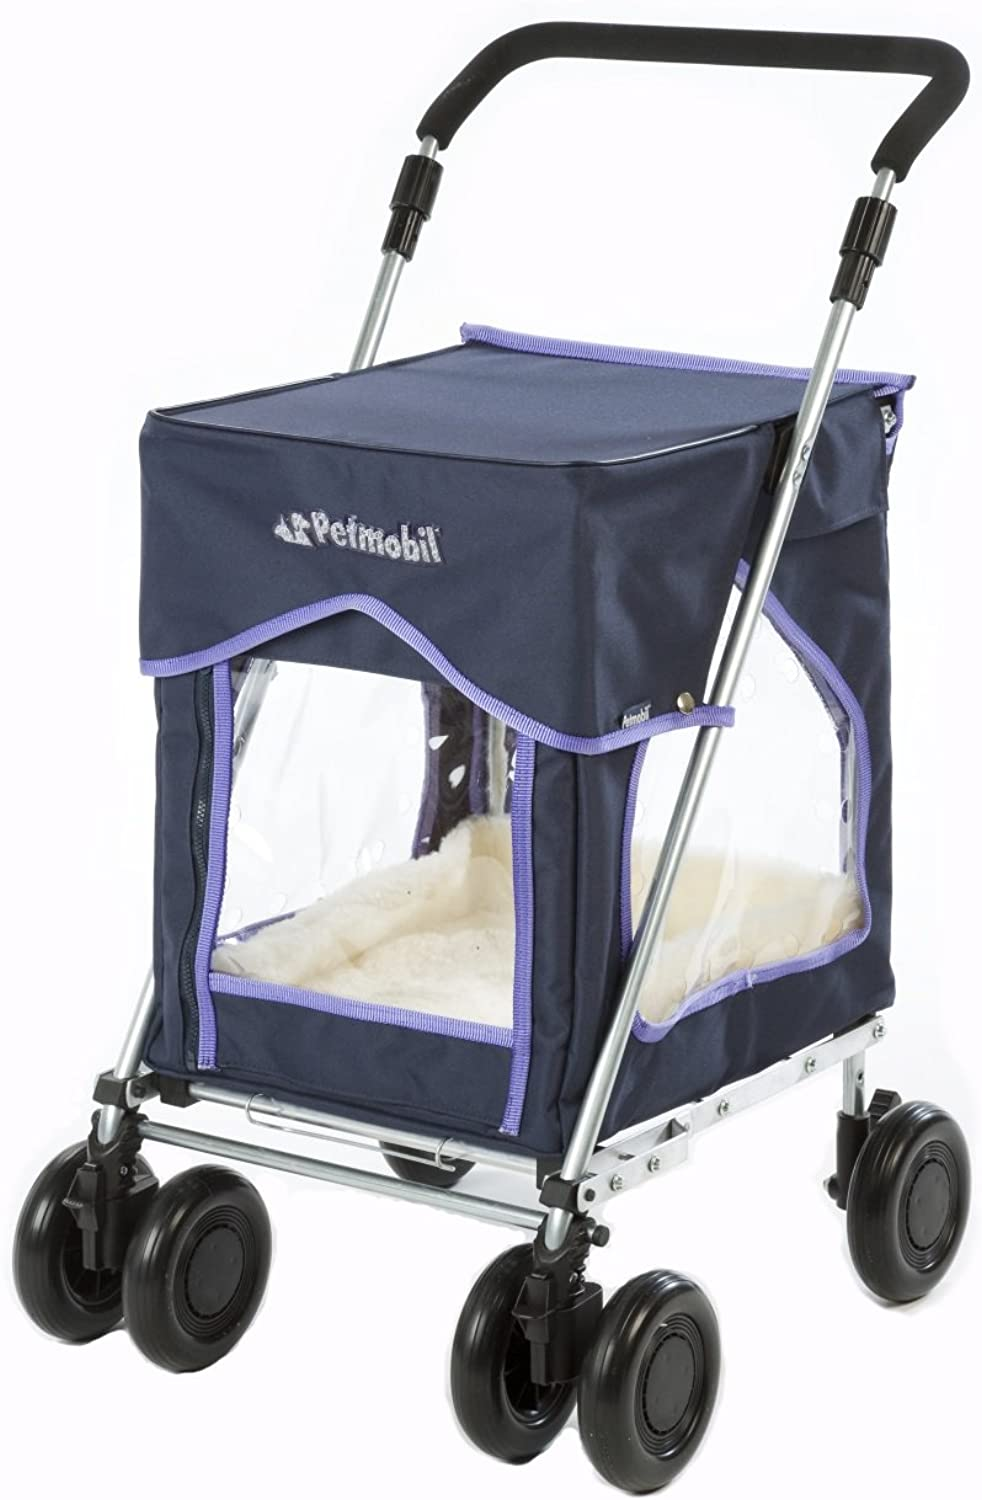 Petmobil by Sholley (Regular) in Discovery bluee, Folding, Strong and Stable Pet, Dog Stroller, Transporter, Carriage, Carrier, Pram, Pushchair, Dog Trolley with Wheels